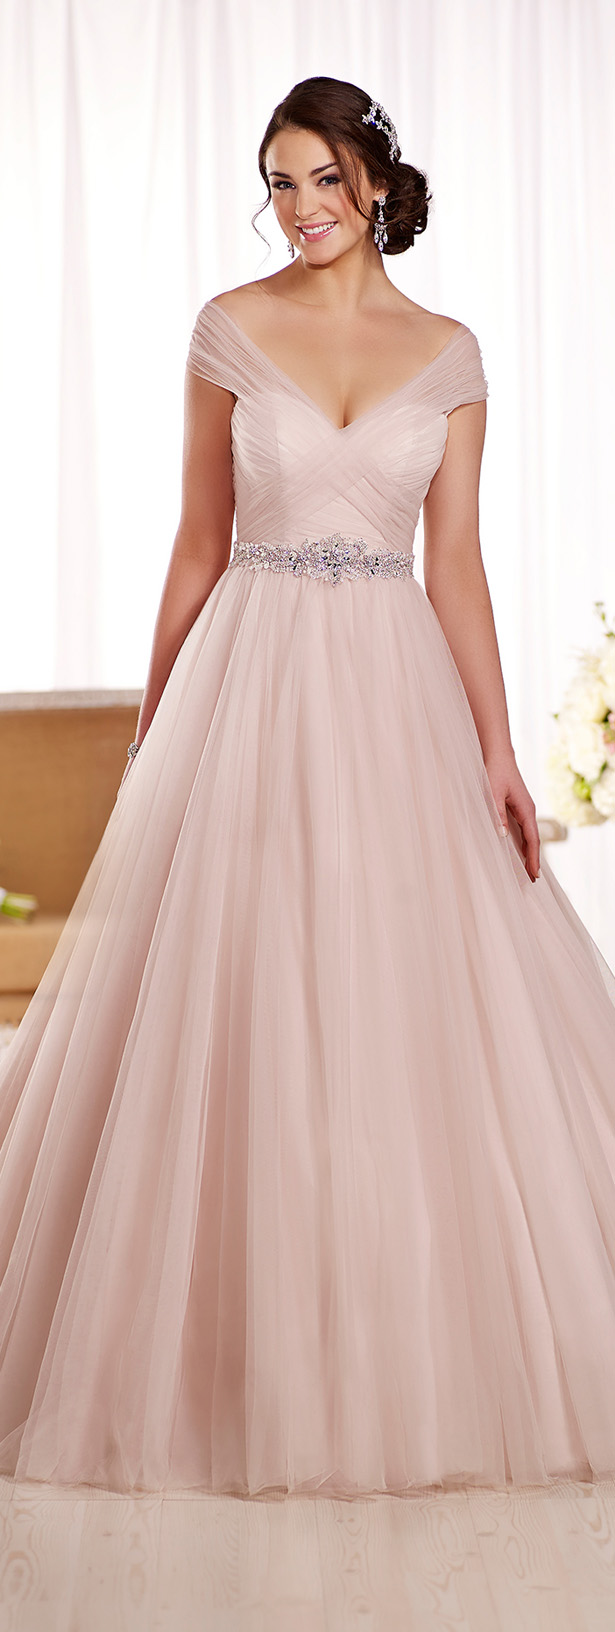 Essense of australia spring 2016 bridal collection belle for Wedding dresses 2016 collection